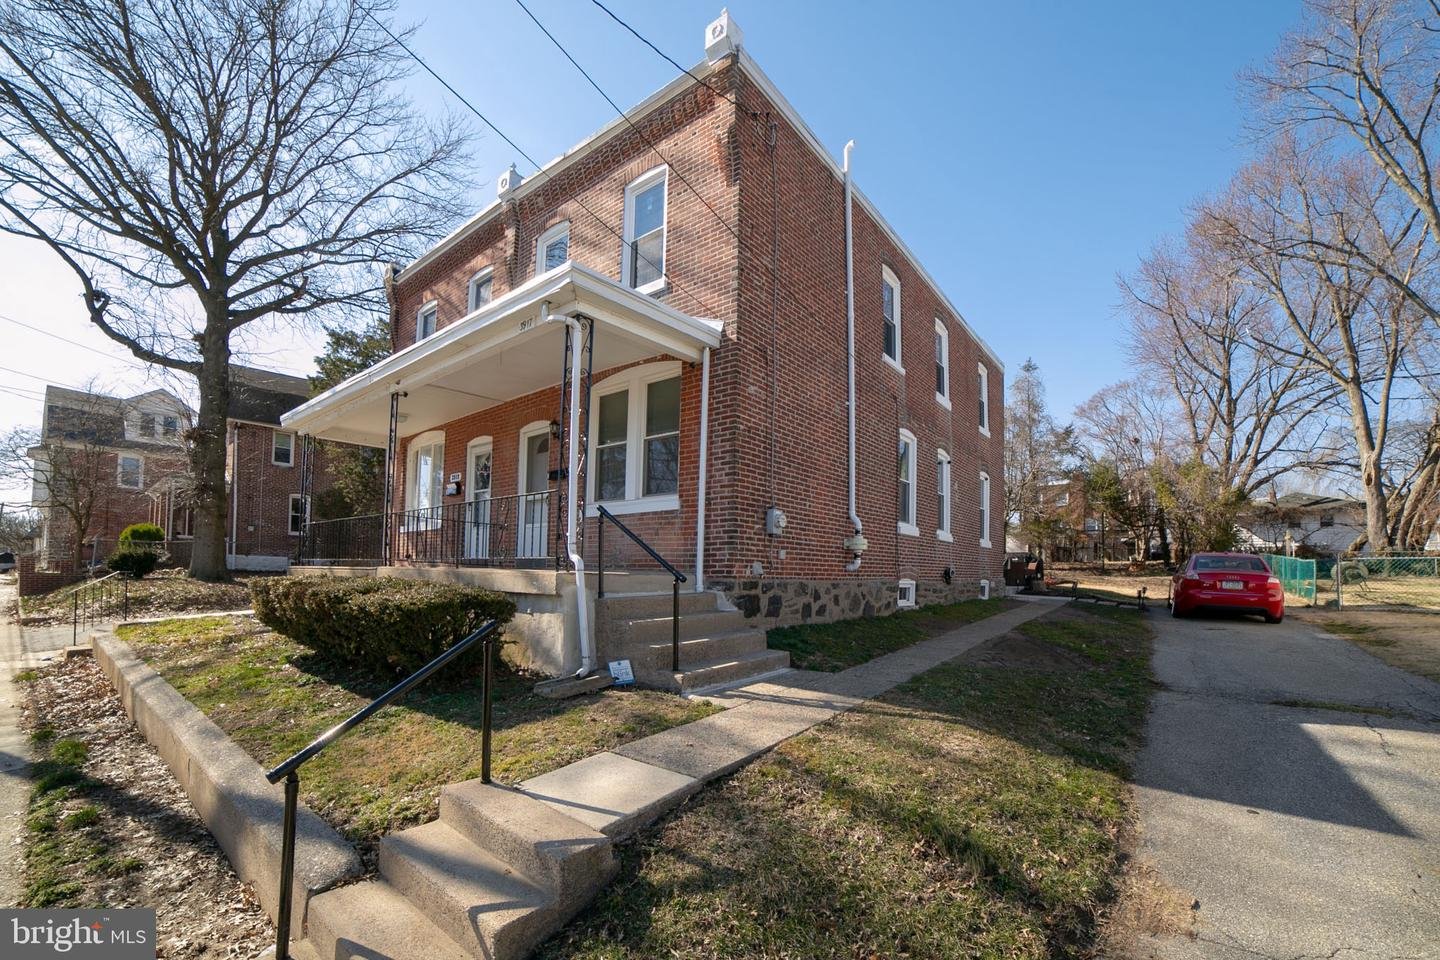 3917 Mary Street Drexel Hill, PA 19026